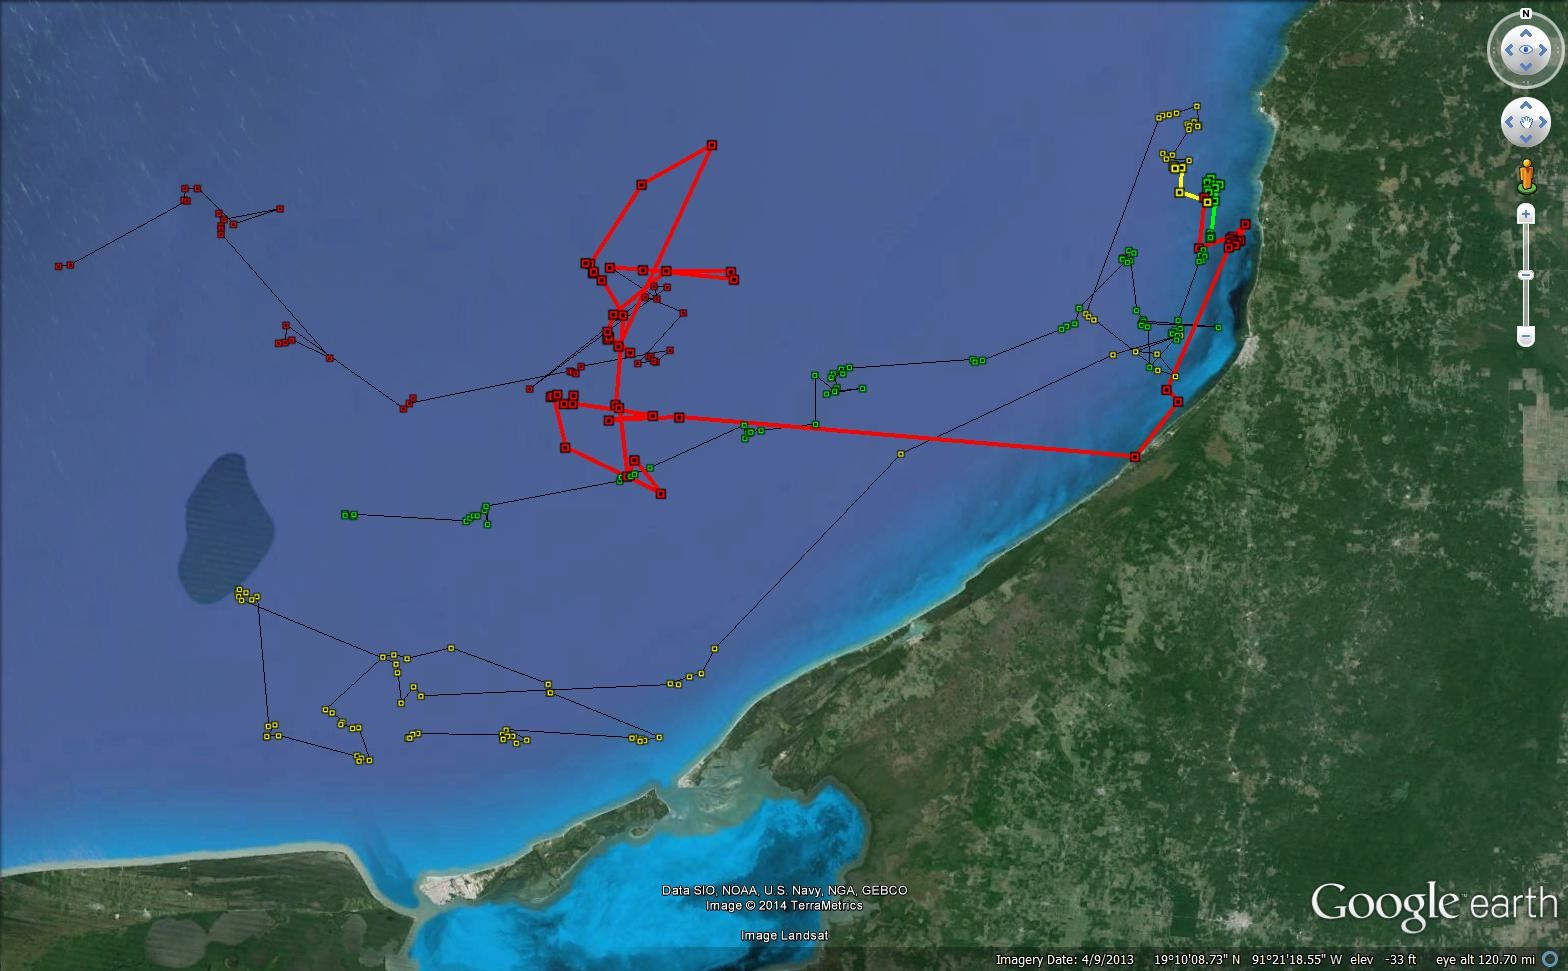 Locations from the SPOT5 tagging of three spotted eagle rays off the coast of Campeche, Mexico on March 8, 2014. Argos locations with a quality rating of 3,2,1,0 and A are shown. Bold lines indicate where the tag was likely still attached on the ray